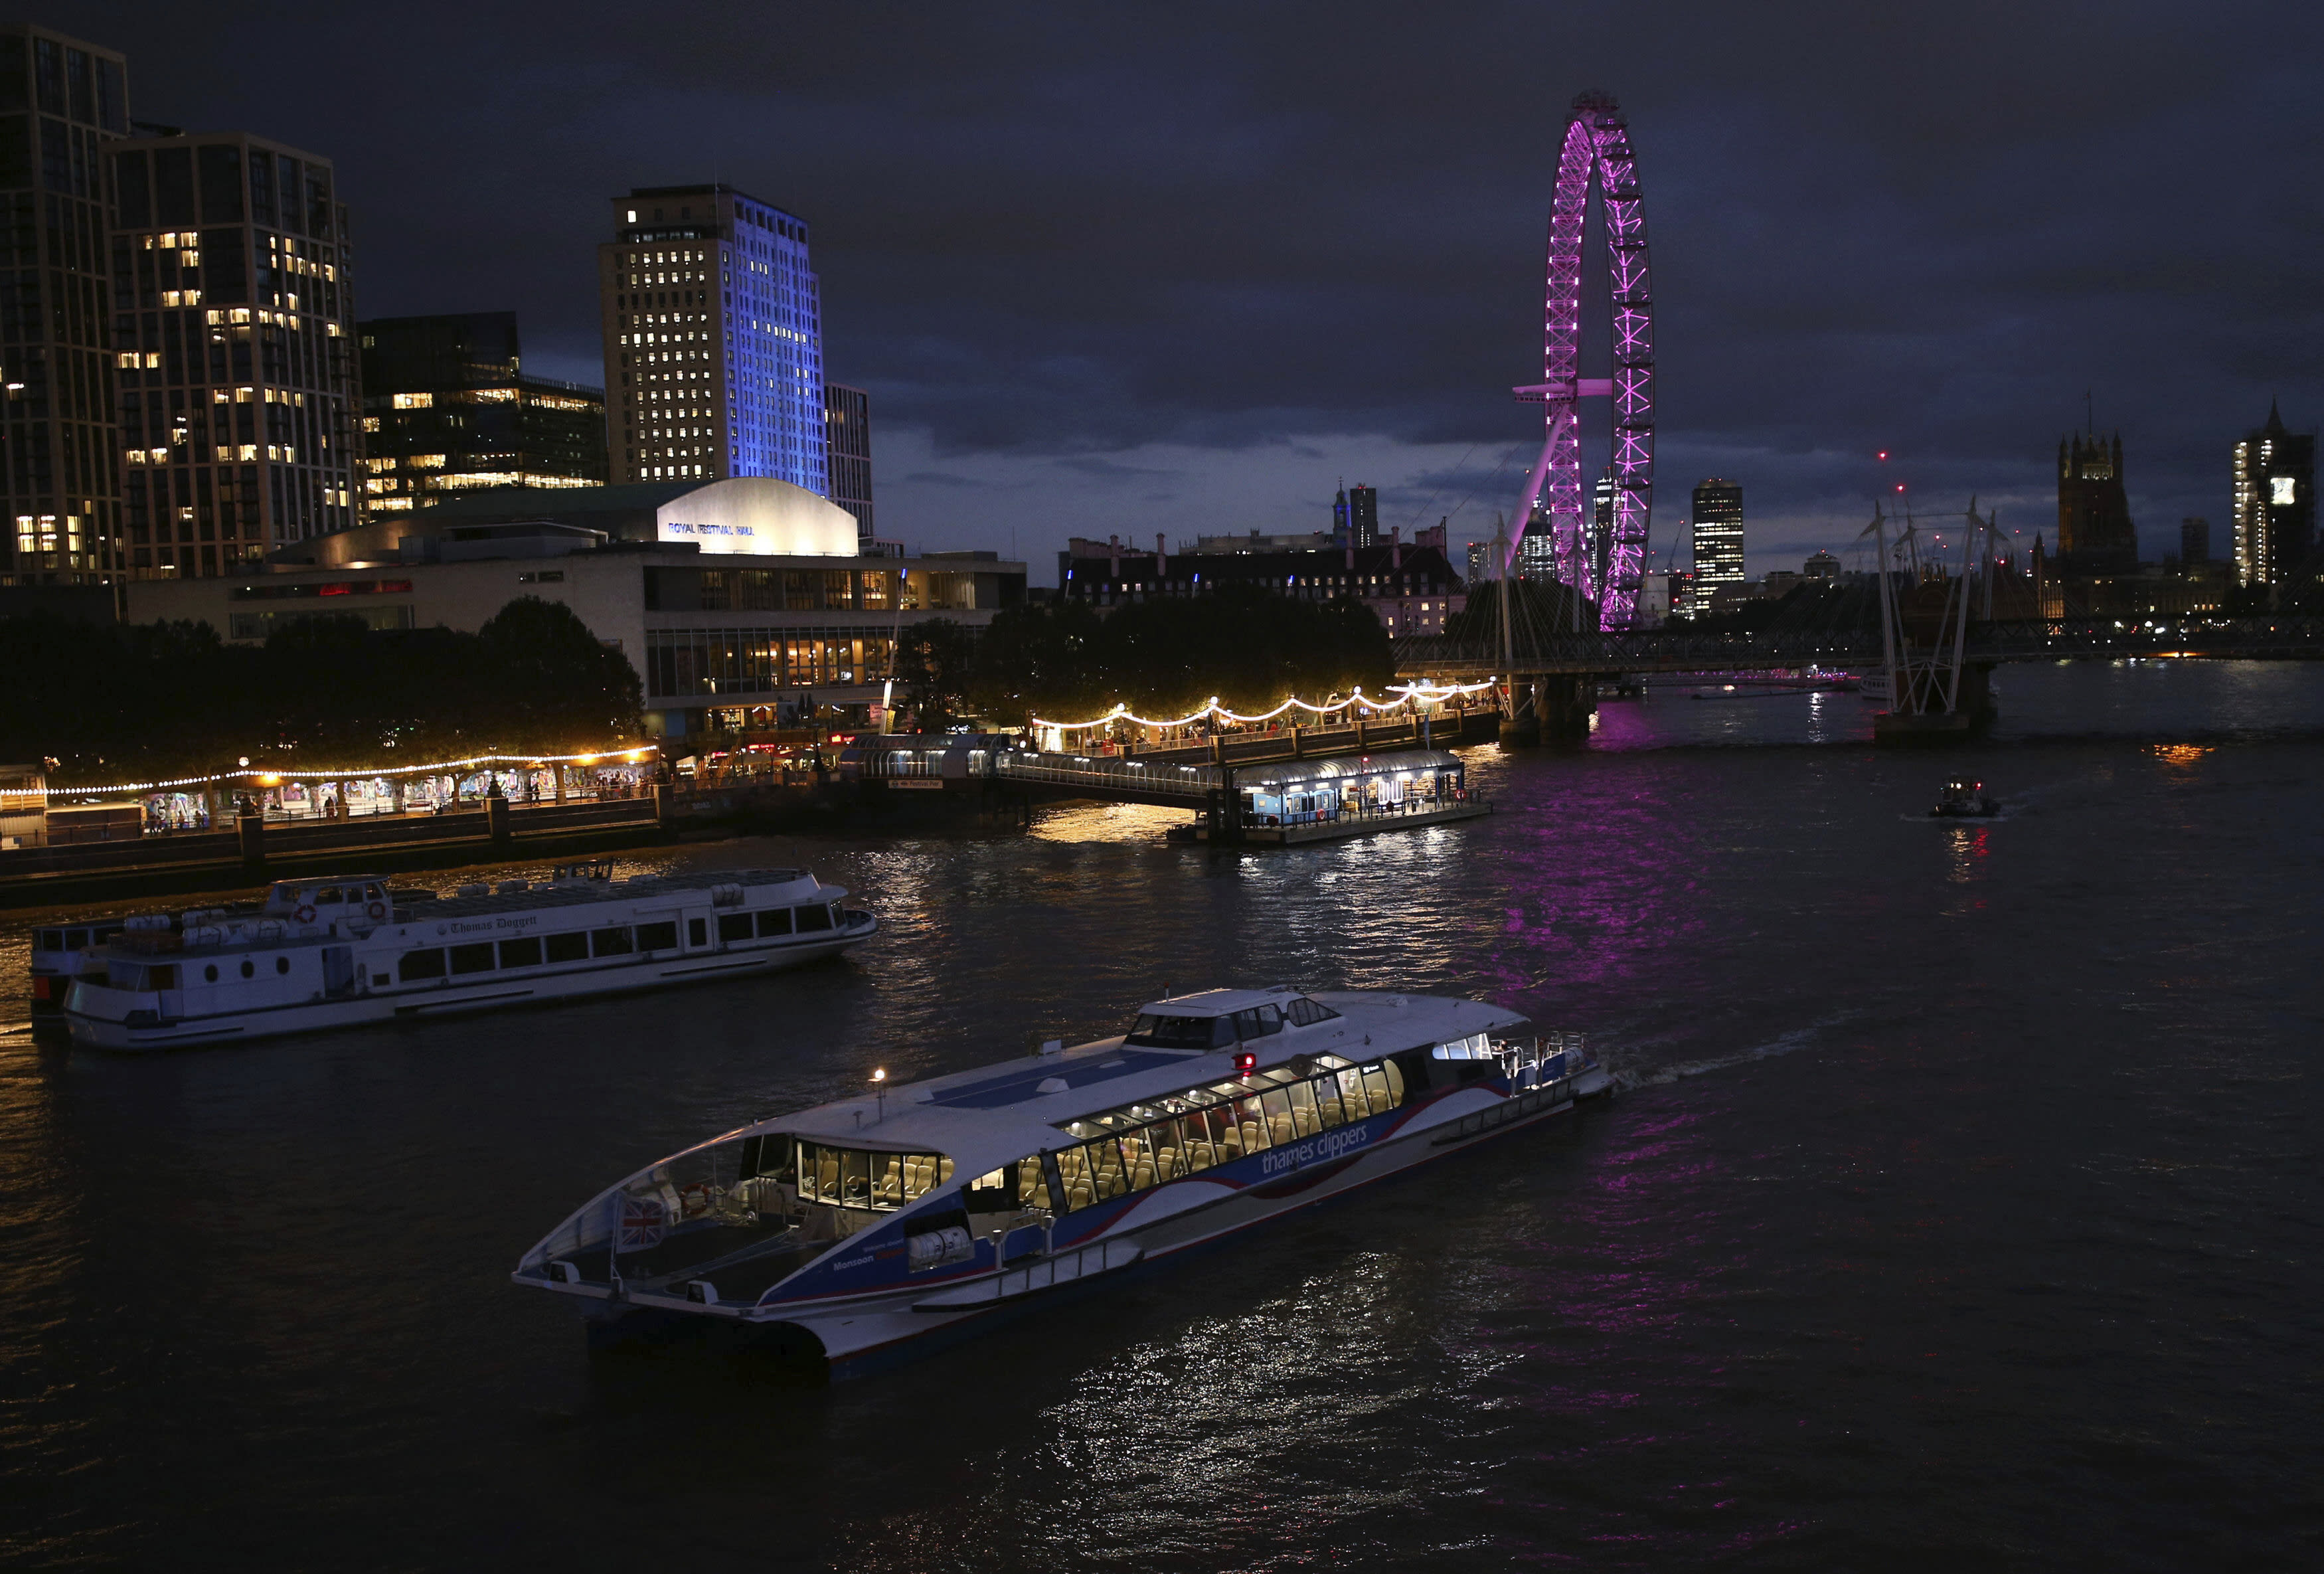 An almost empty Thames Clipper boat sails past the South Bank during the coronavirus pandemic on the River Thames, in central London, Tuesday, Sept. 8, 2020. (Yui Mok/PA via AP)